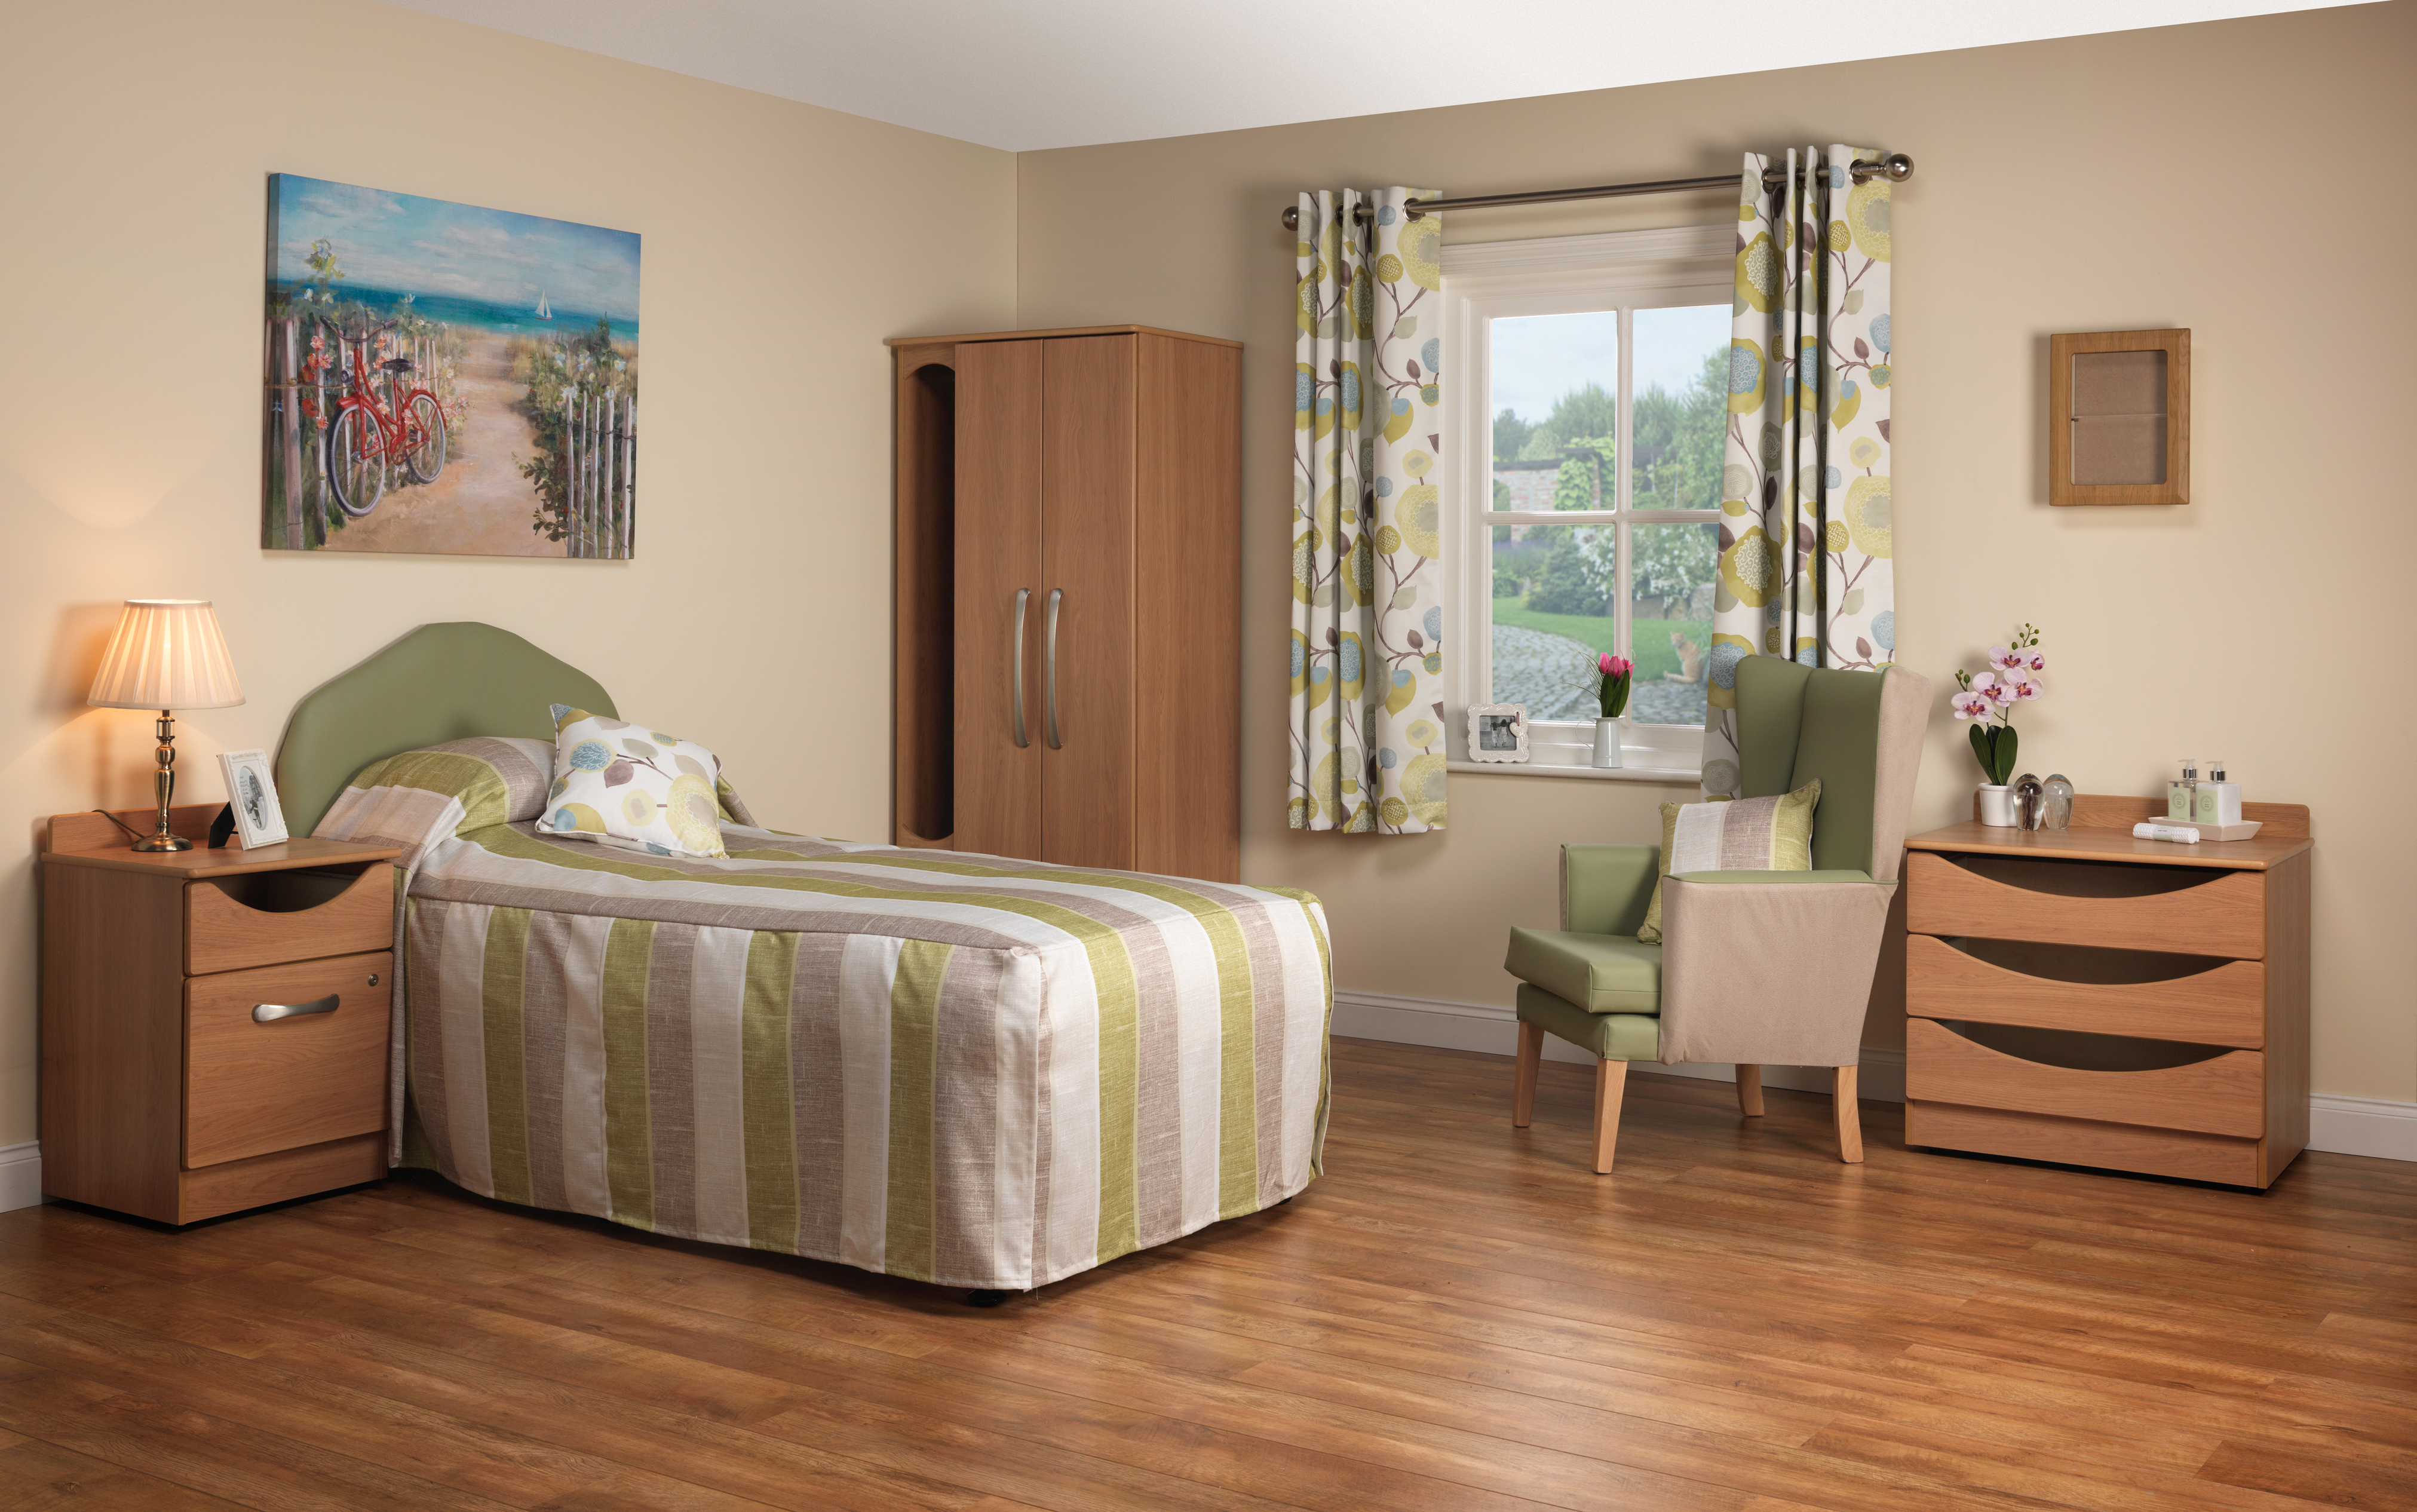 Extending The Period Of Independence For Residents Suffering With Dementia In A Bedroom Environment